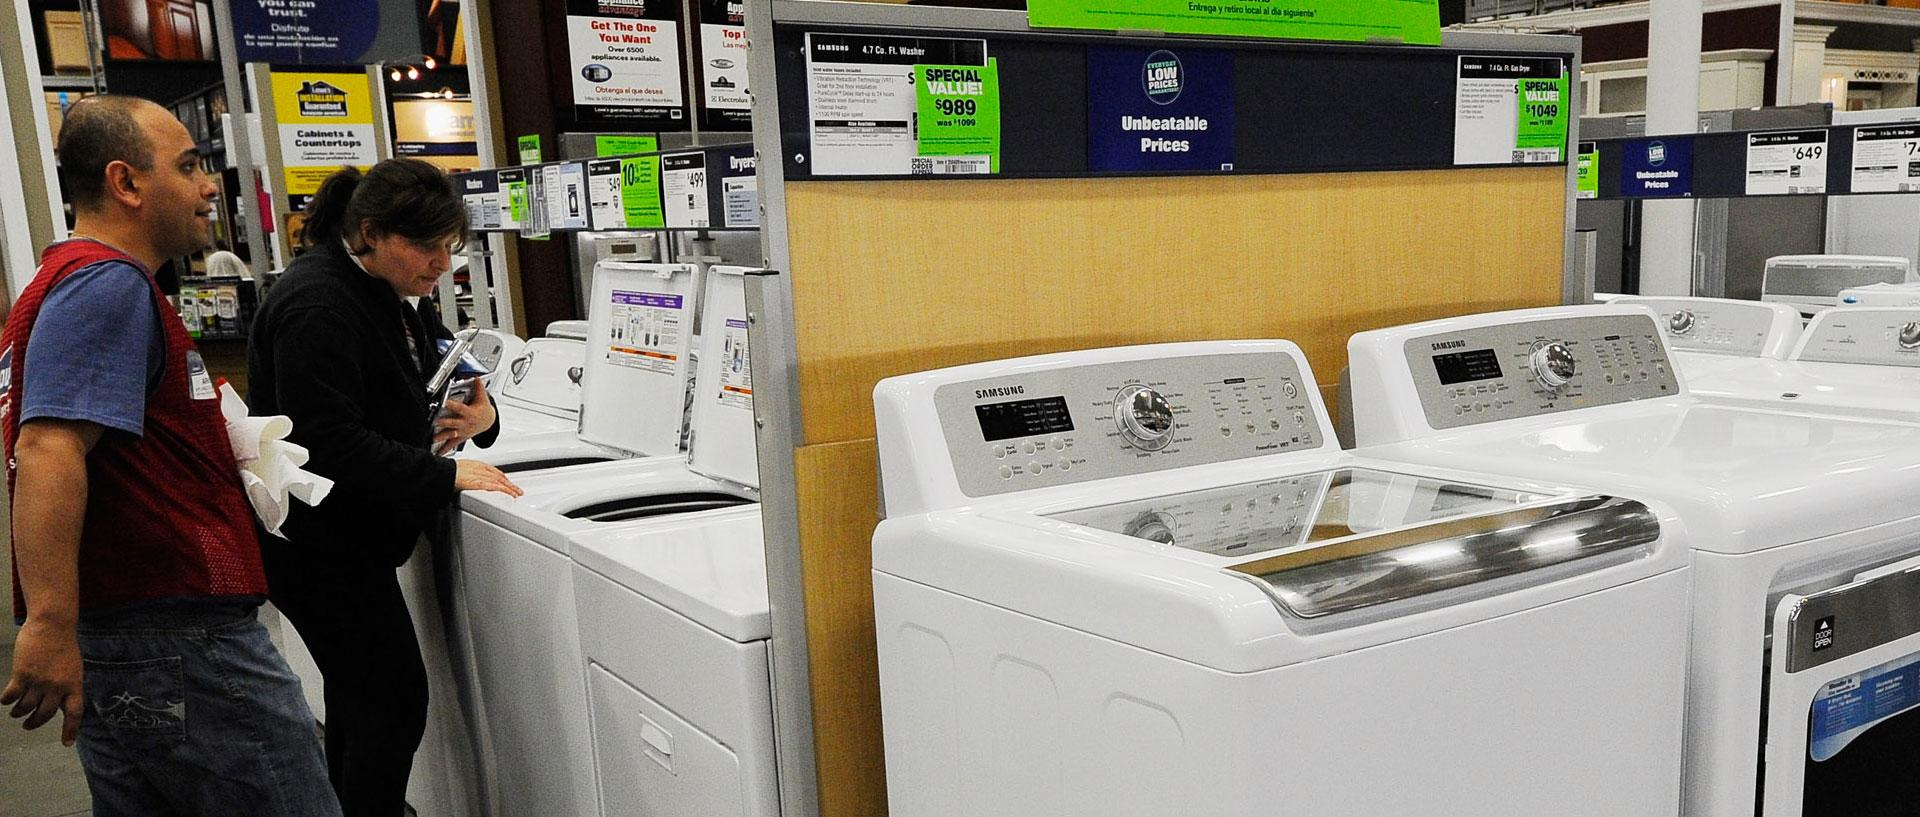 Best Black Friday Appliance Deals at Best Buy, Home Depot, Lowe's, and Sears